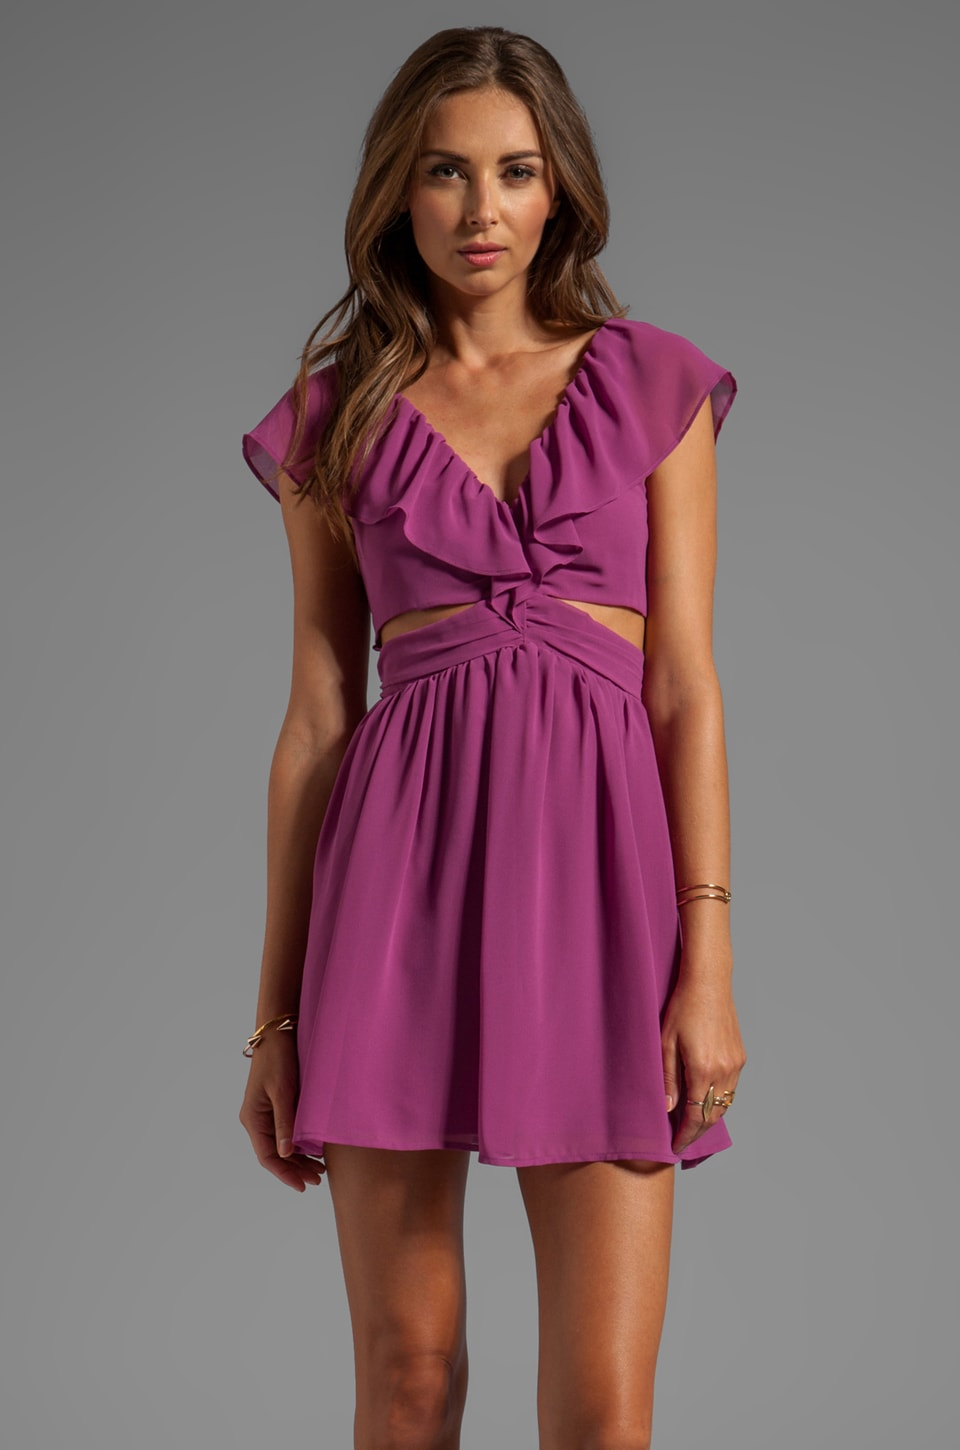 keepsake Lost Without You Dress in Boysenberry